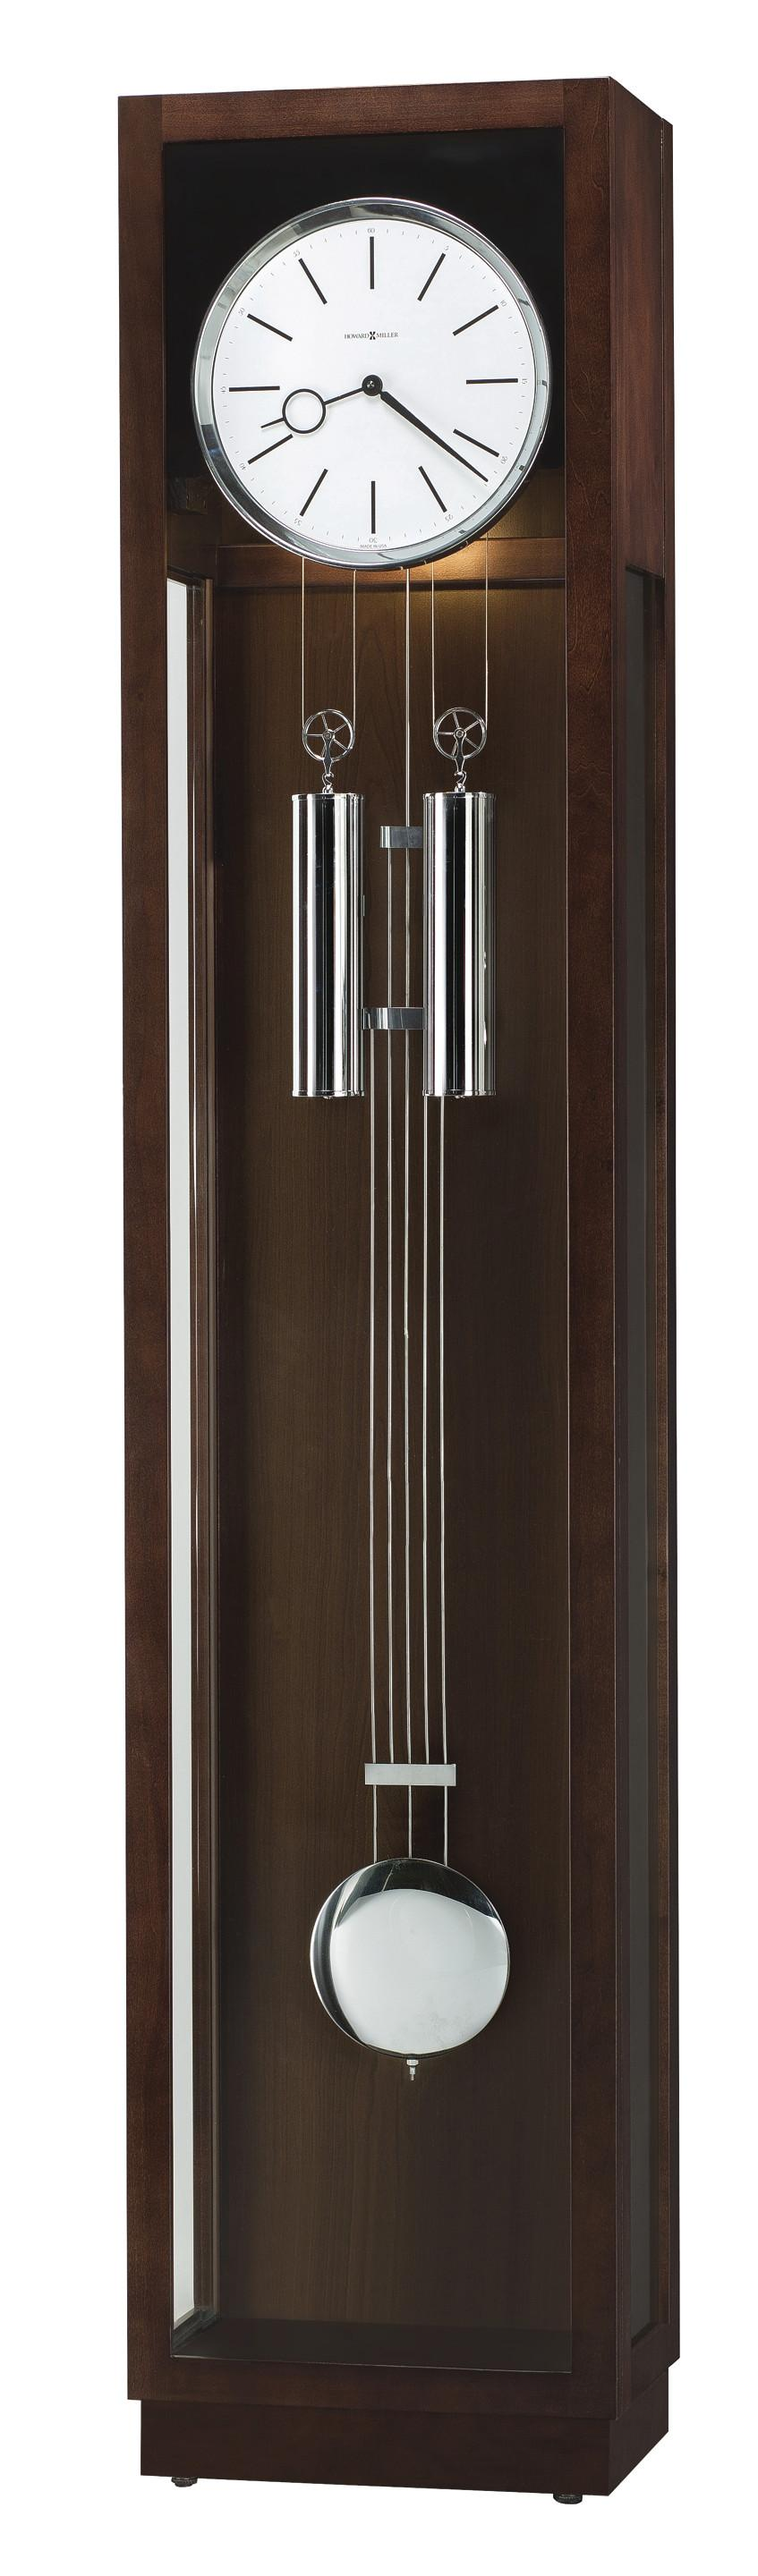 611 Grandfather Clock by Howard Miller at Alison Craig Home Furnishings